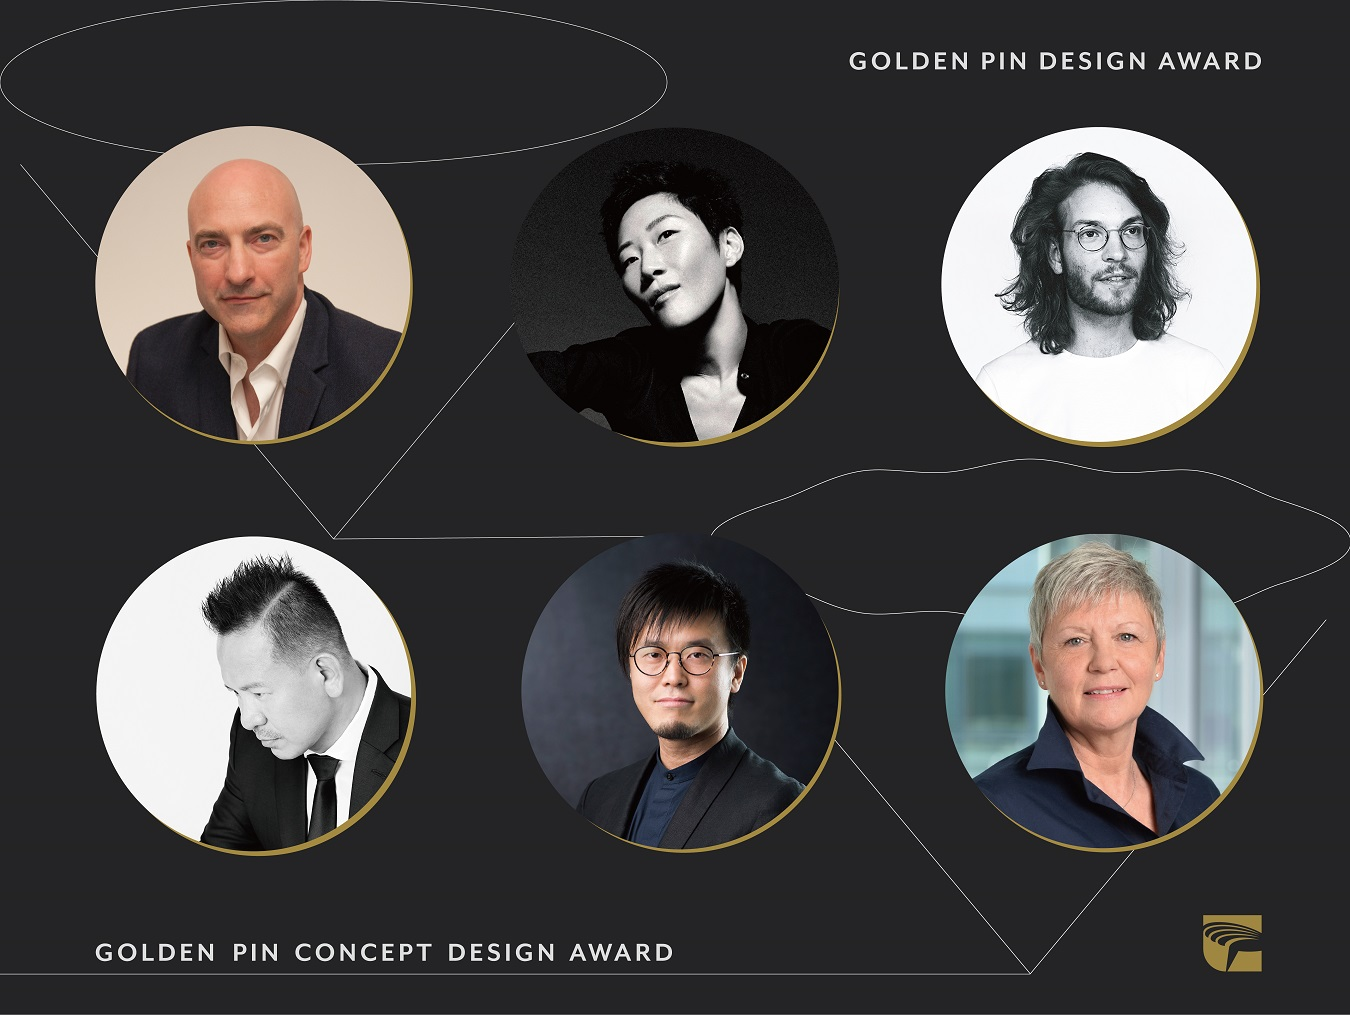 The 85 Jury Members of the 2020 Golden Pin Design Award and Golden Pin Concept Design Award Announced